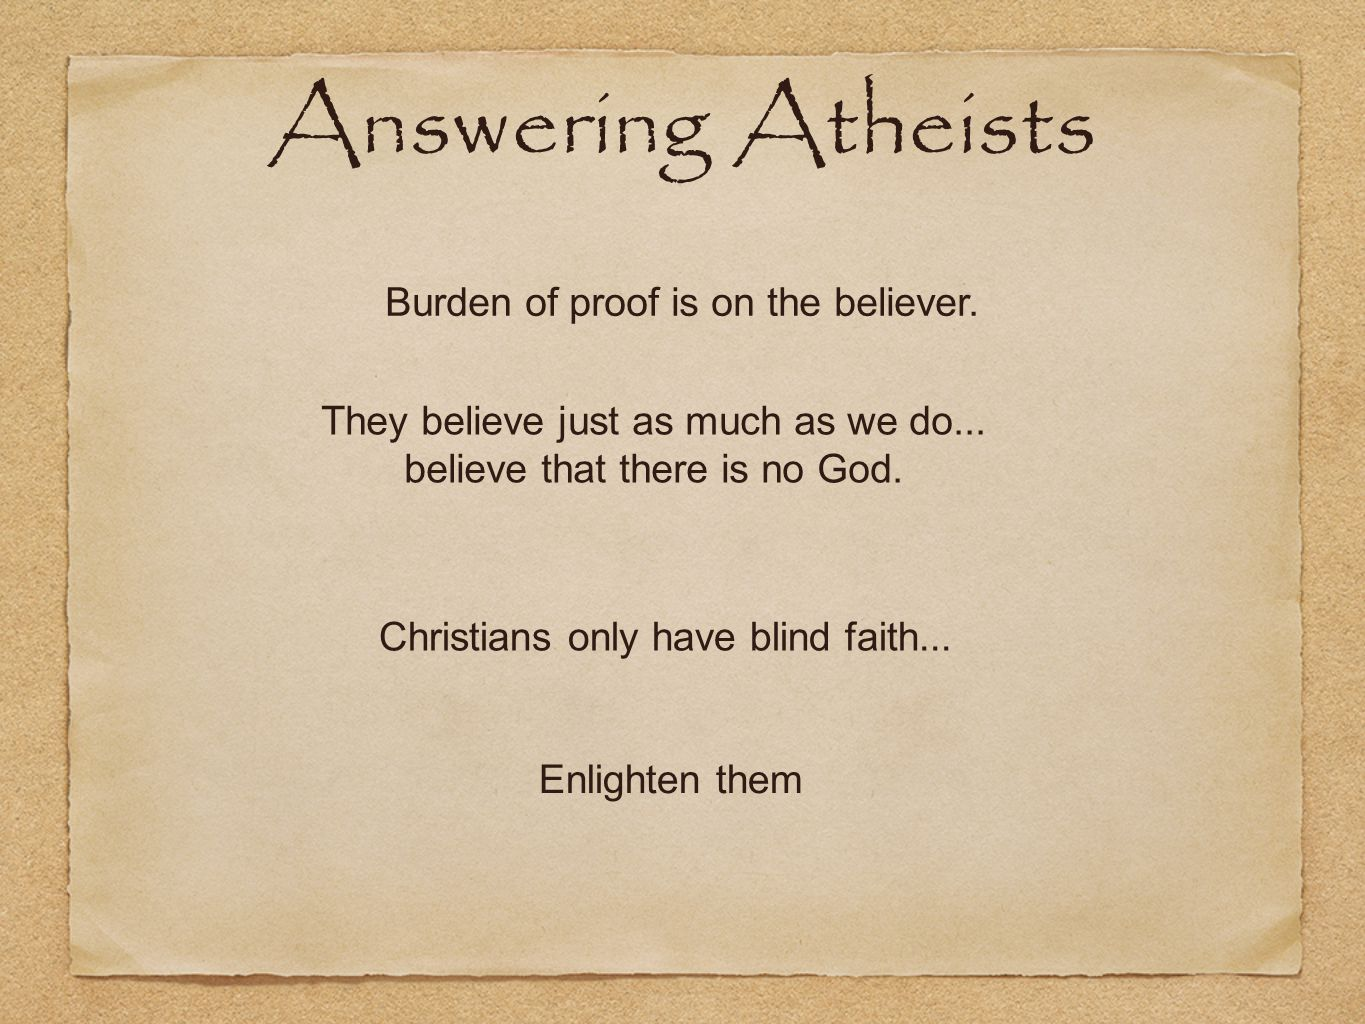 Burden of proof is on the believer. They believe just as much as we do...